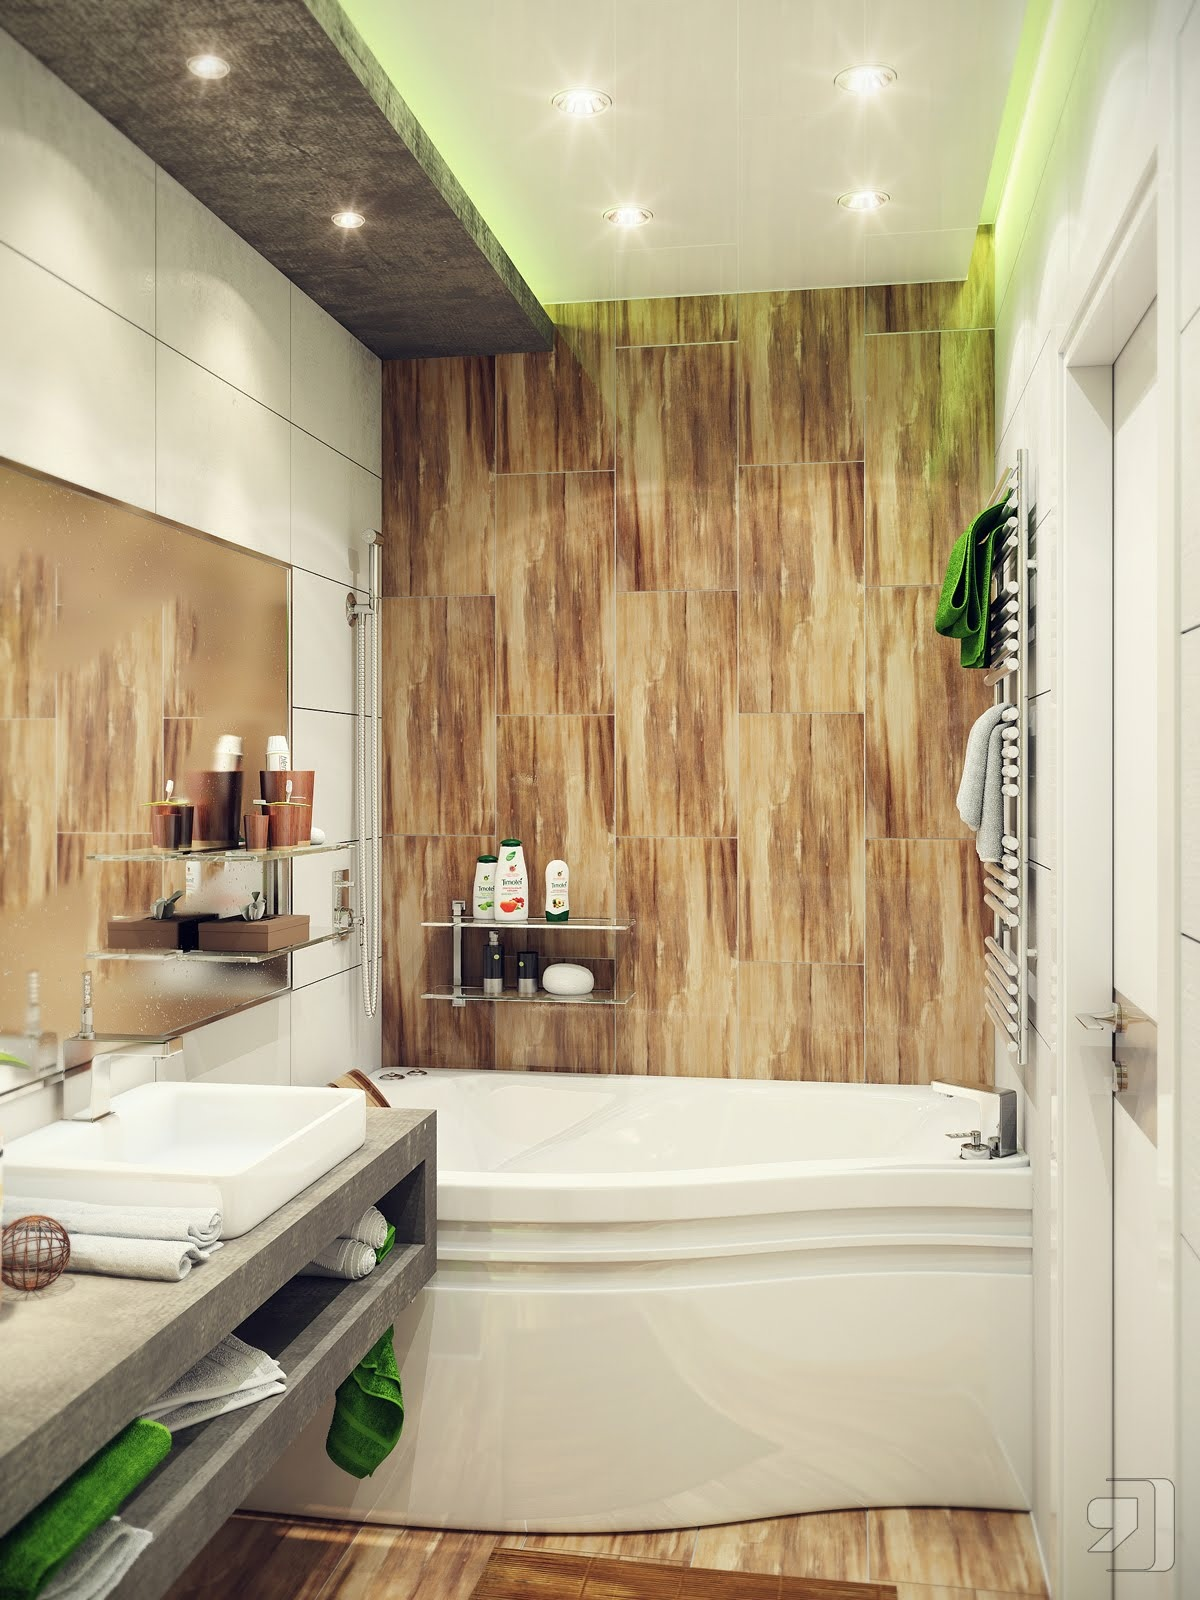 Green-white-wood-bathroom